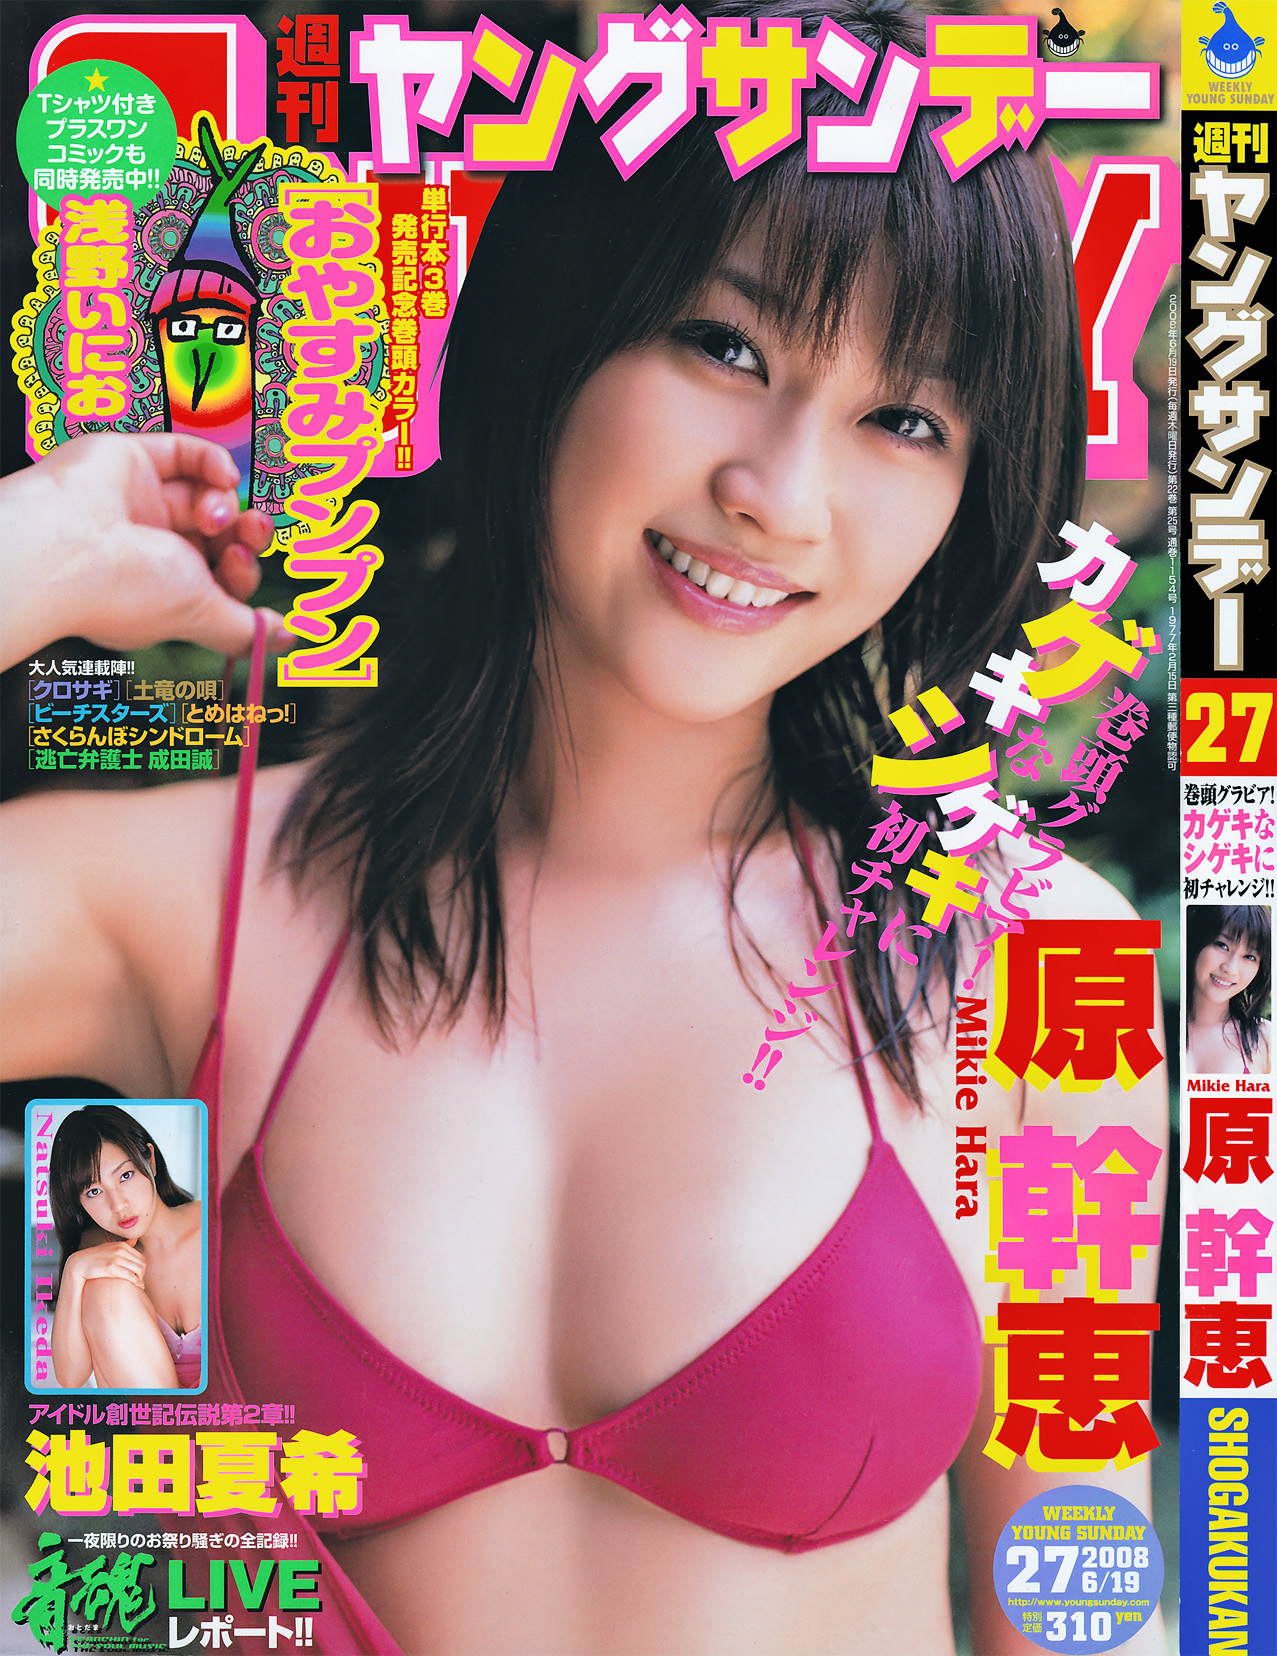 Weekly Young Sunday 2008 No.27 Mikie Hara 原幹惠 (15P/10mb)